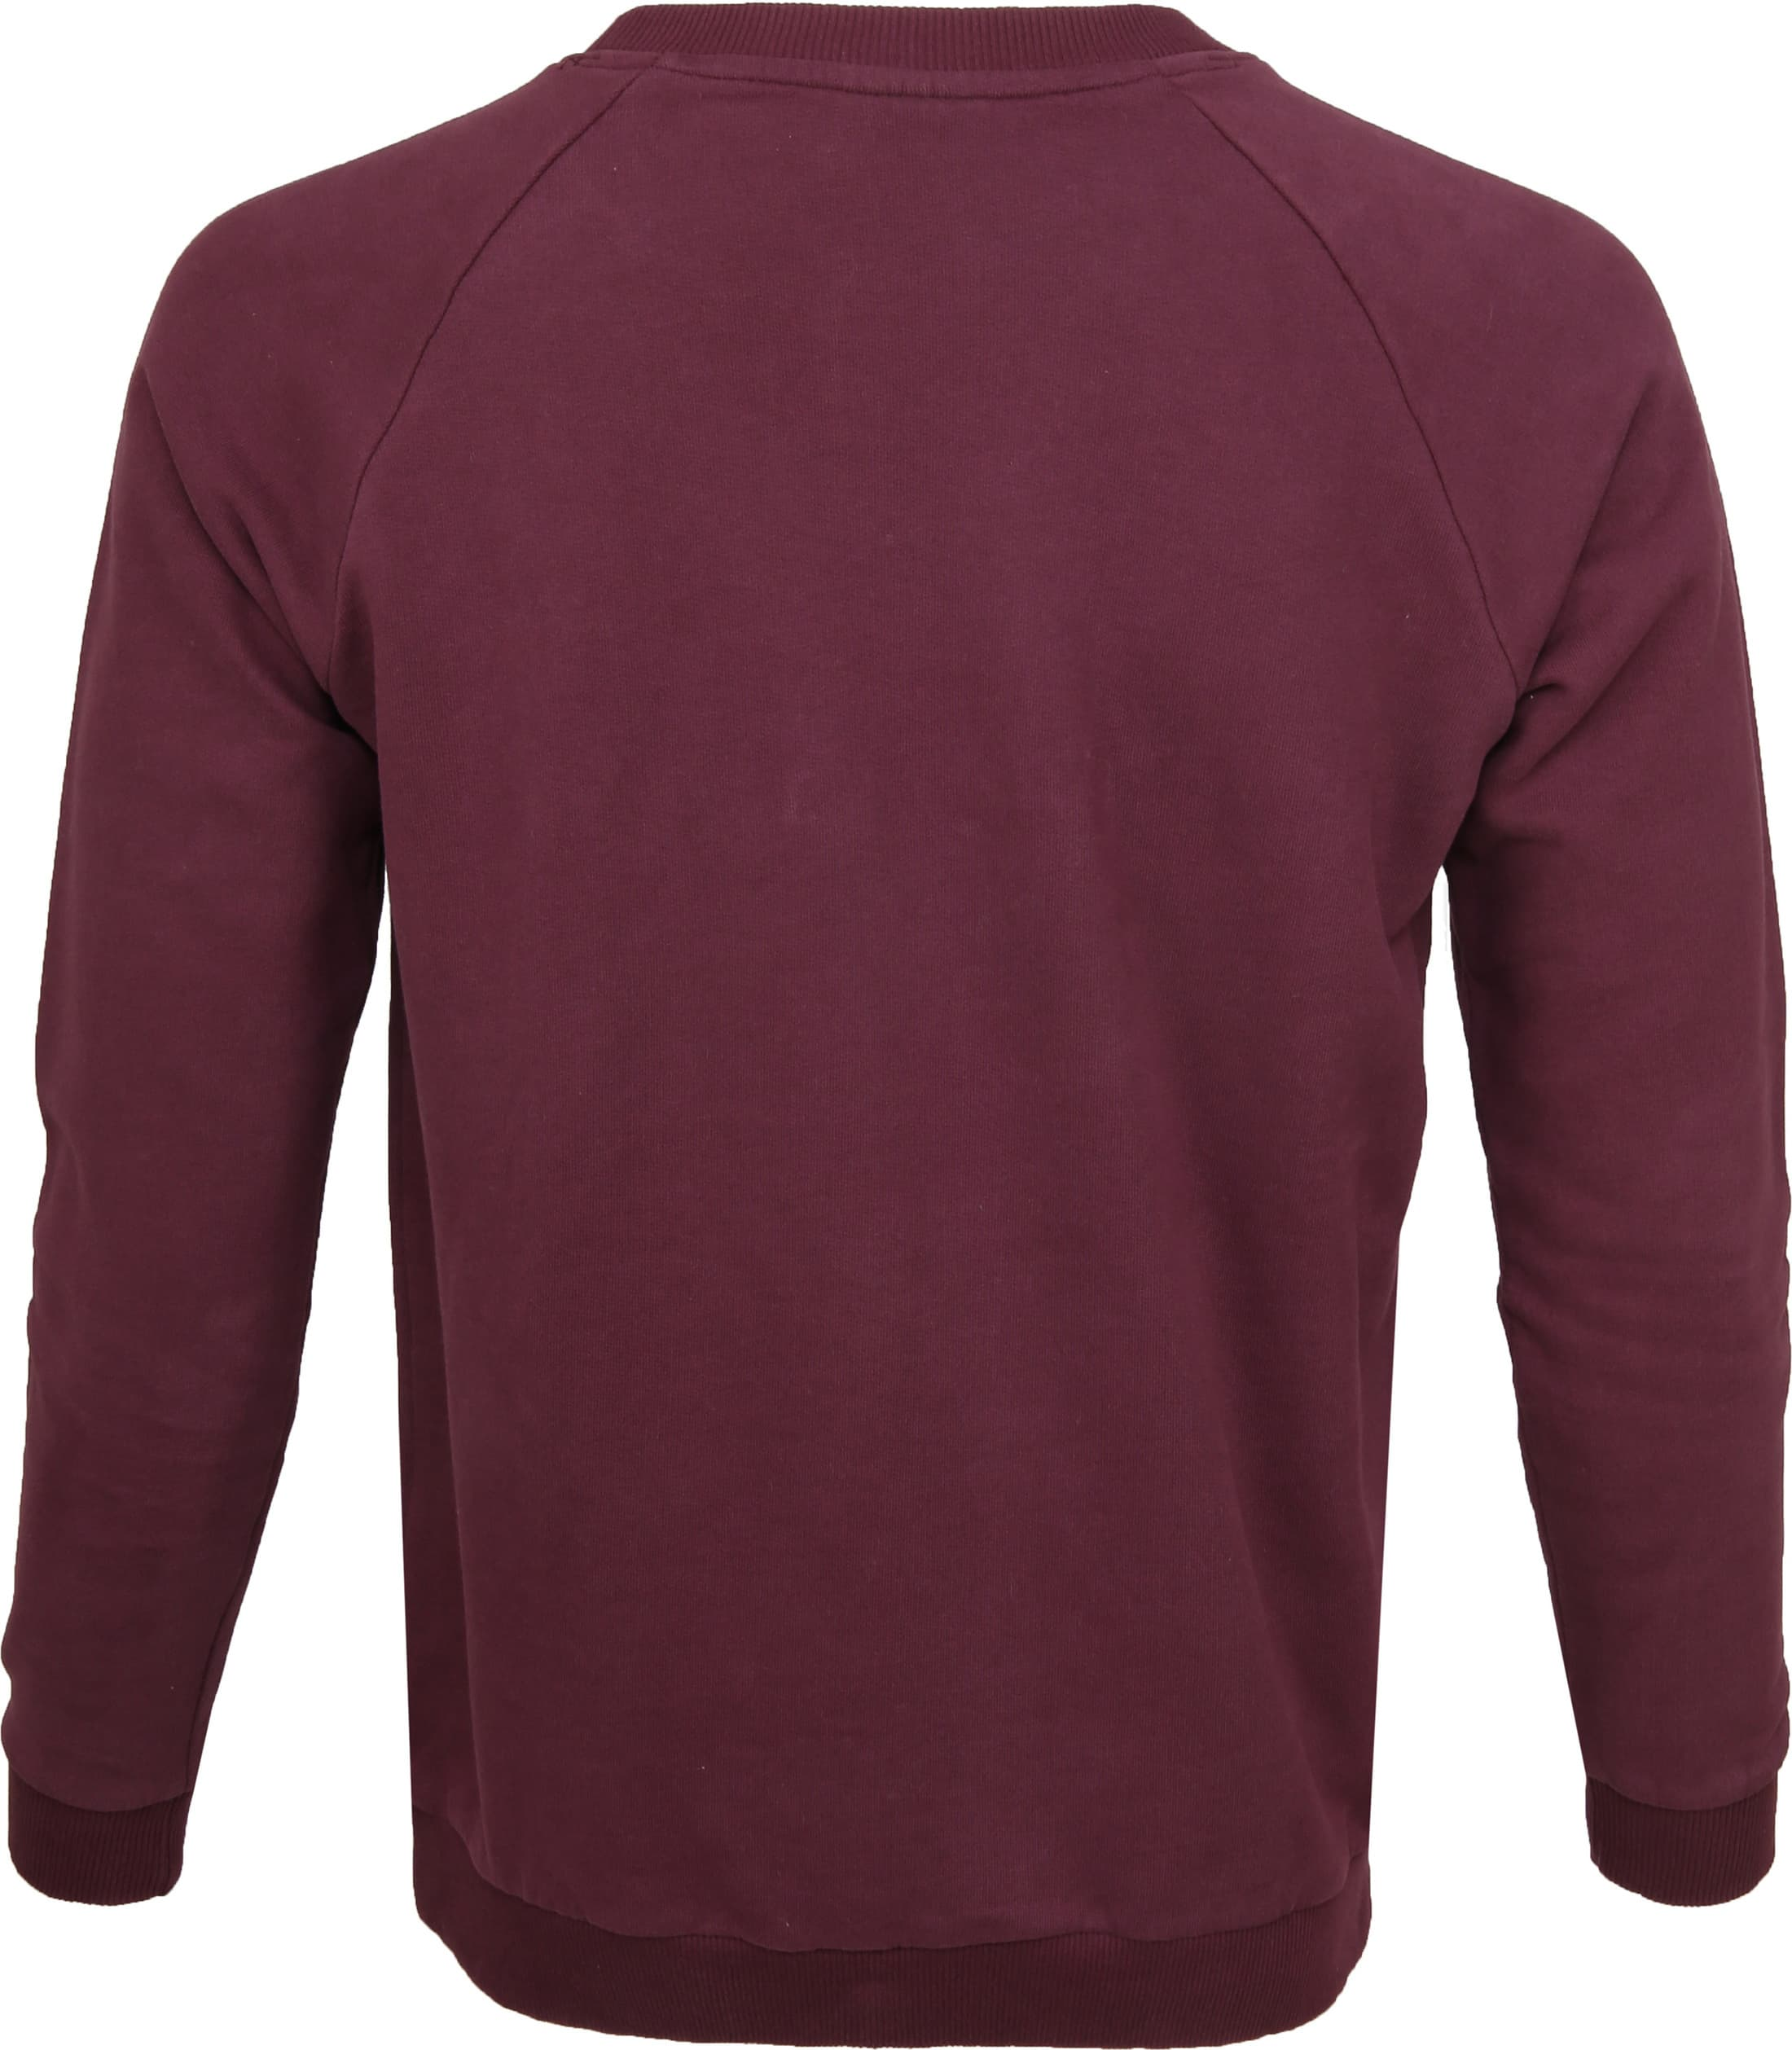 Knowledge Cotton Apparel Trui Bordeaux foto 2